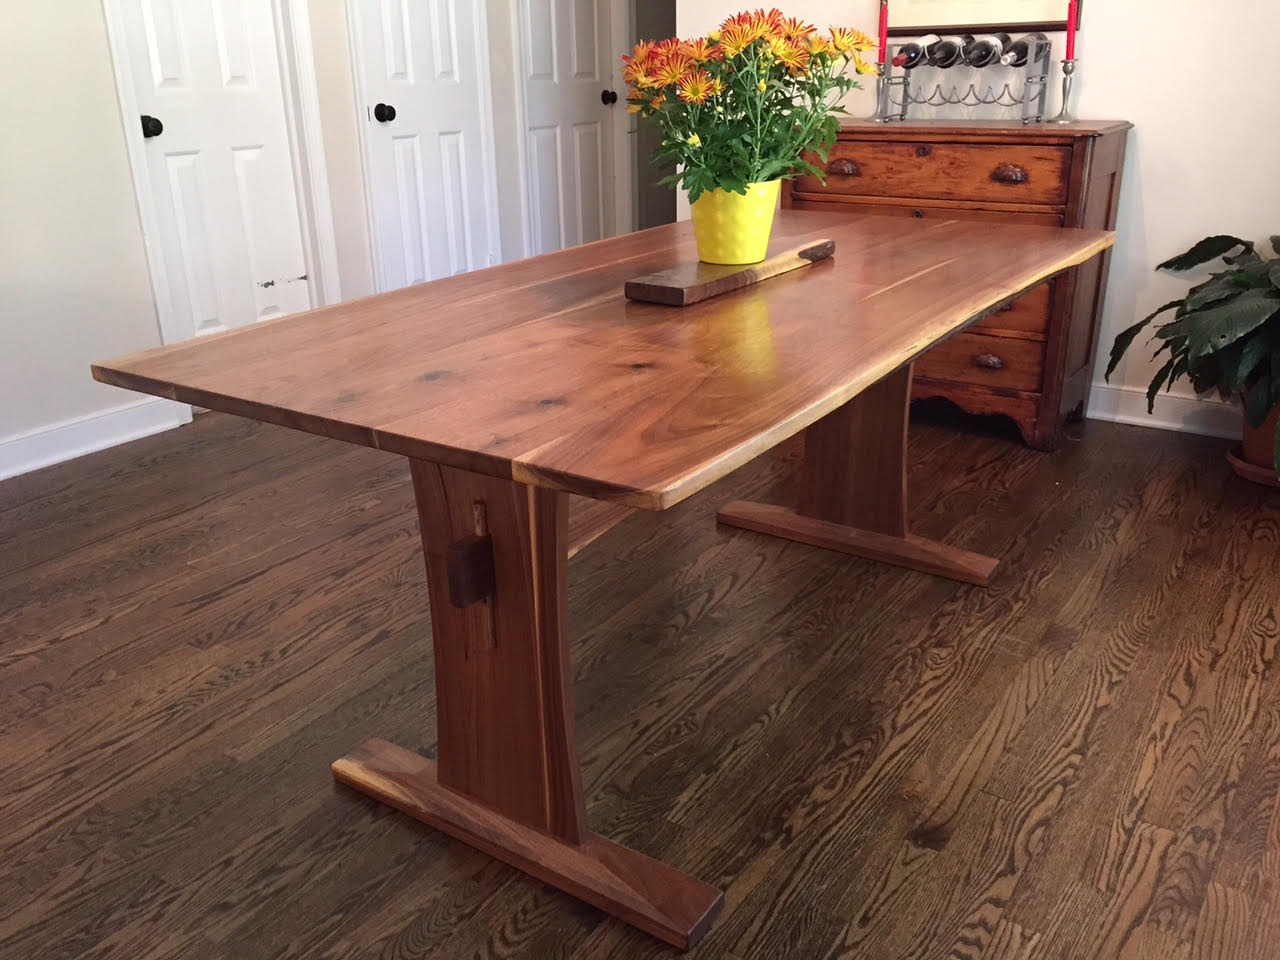 Beautiful Walnut Trestle Table With Wxtensions Walnut Trestle Table Without  Extensions ...